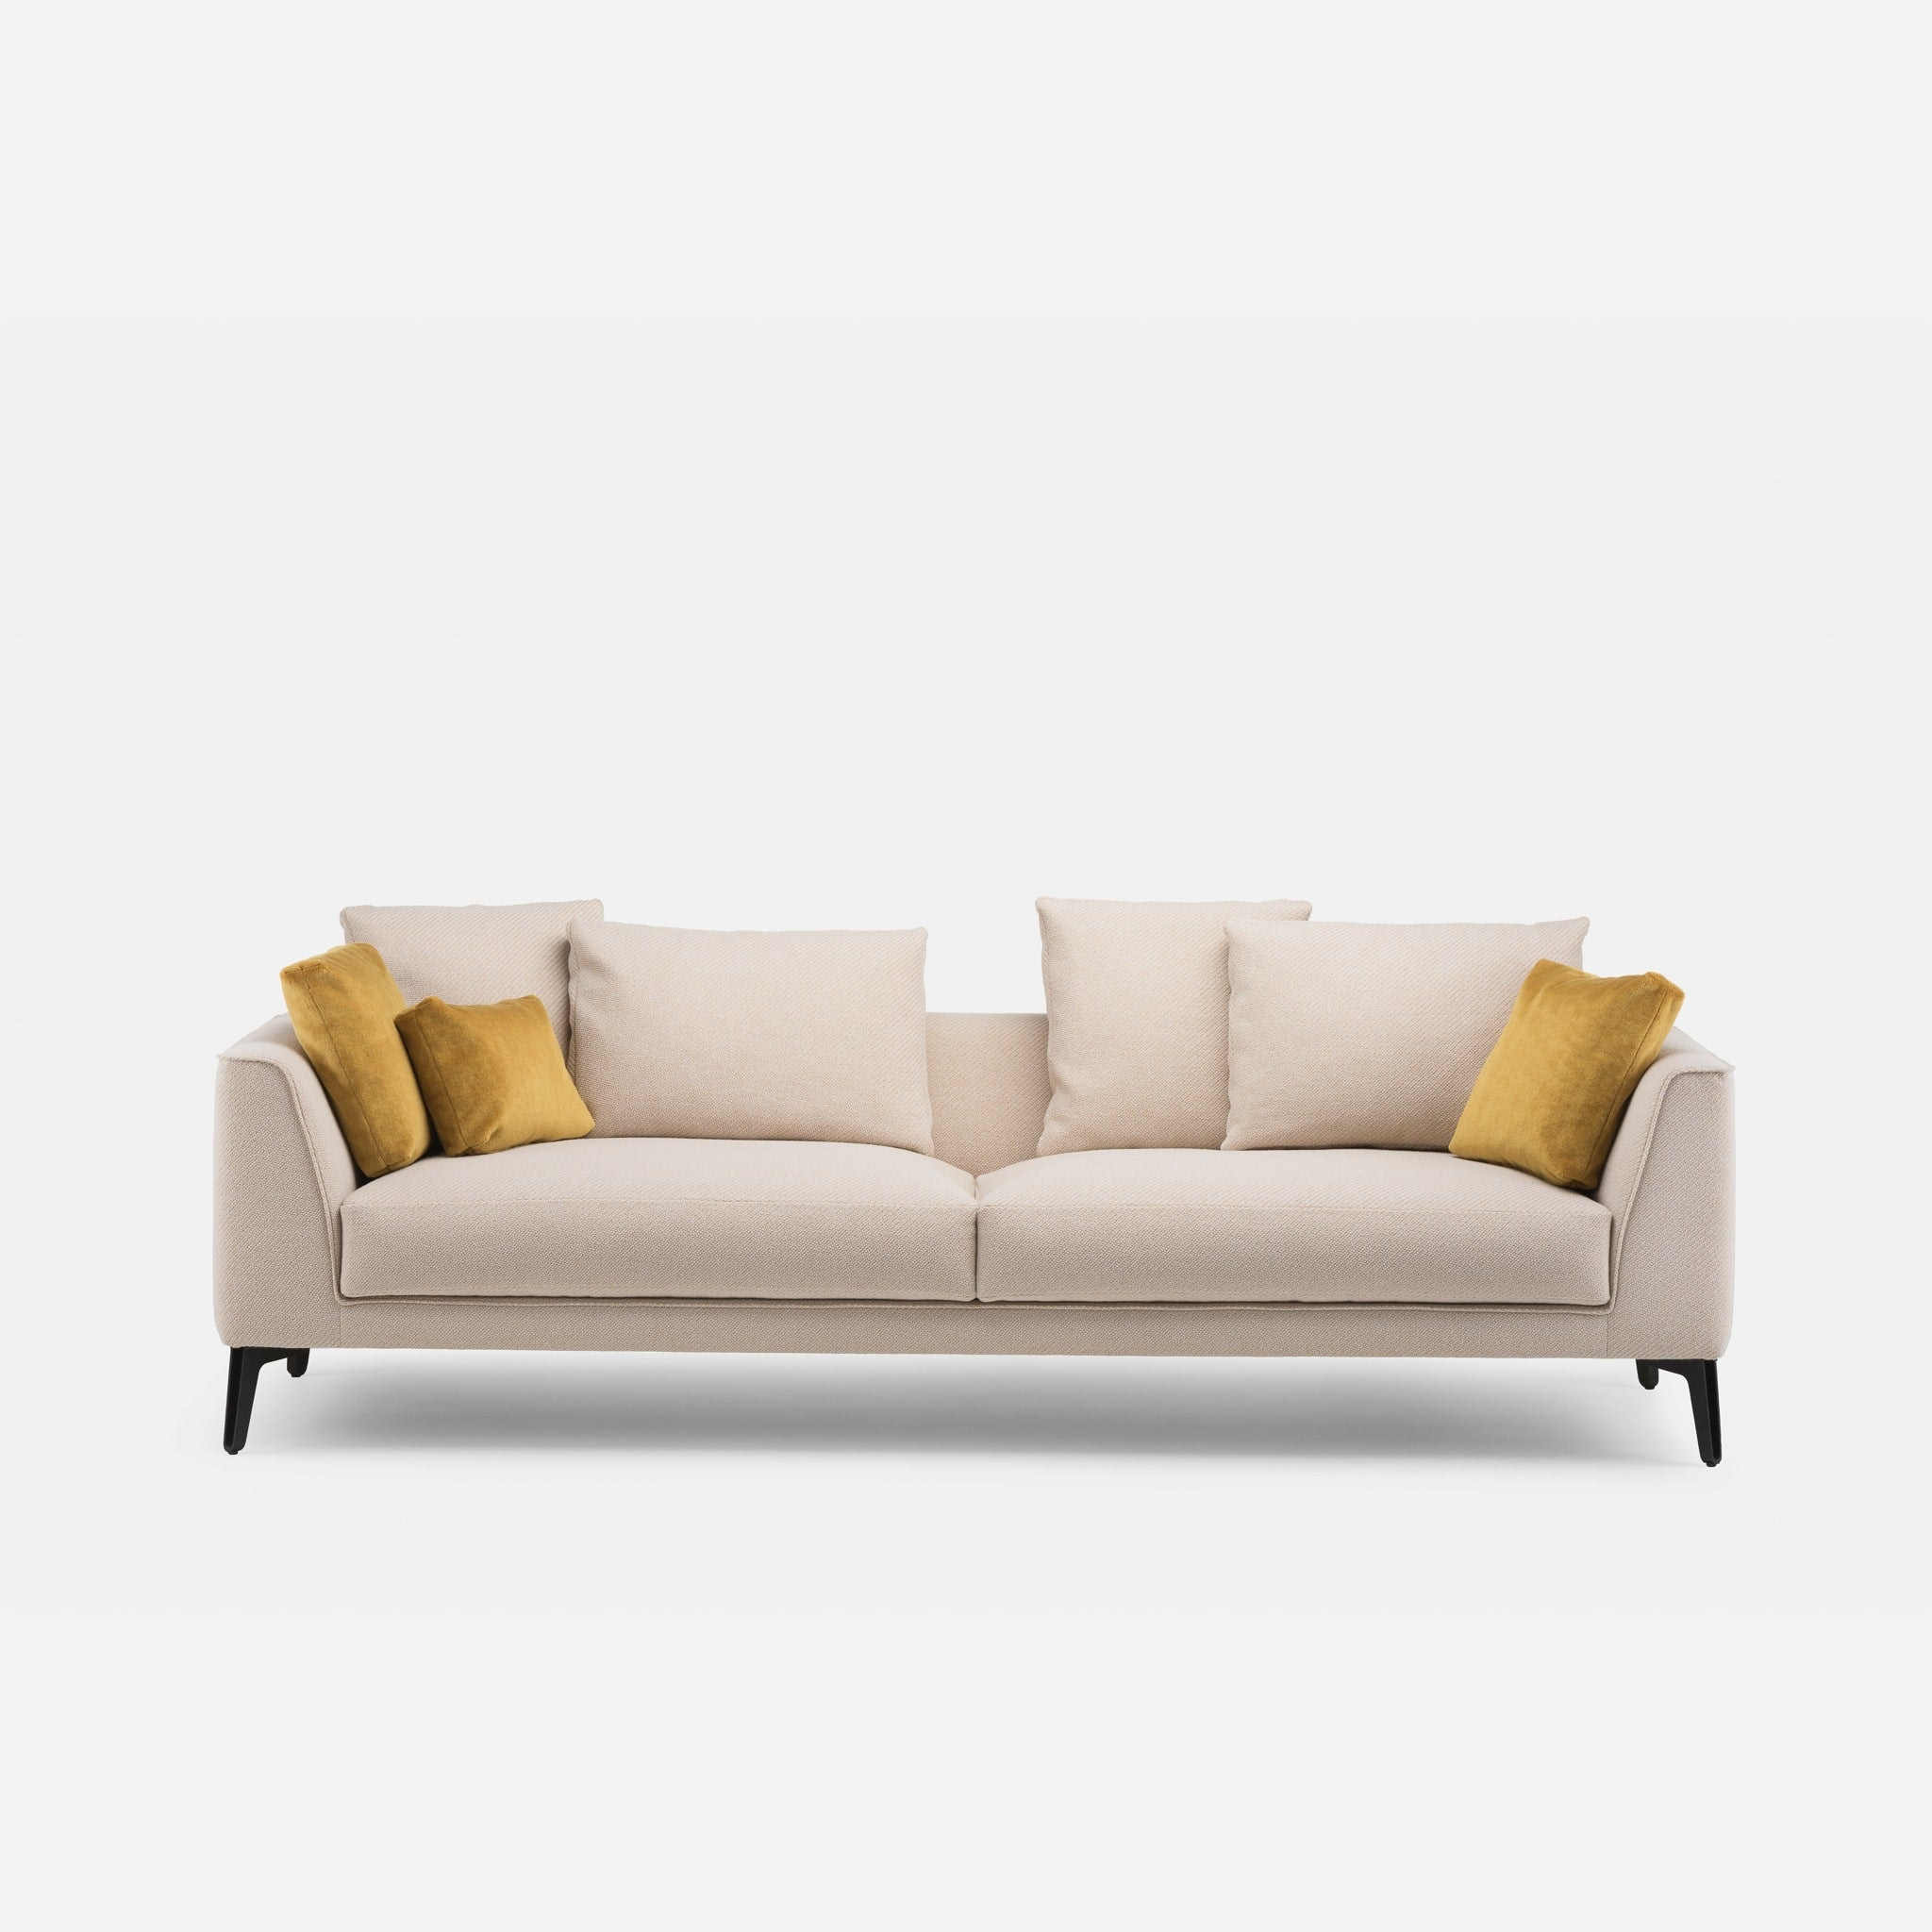 Mcqueen Sofa by Matthew Hilton